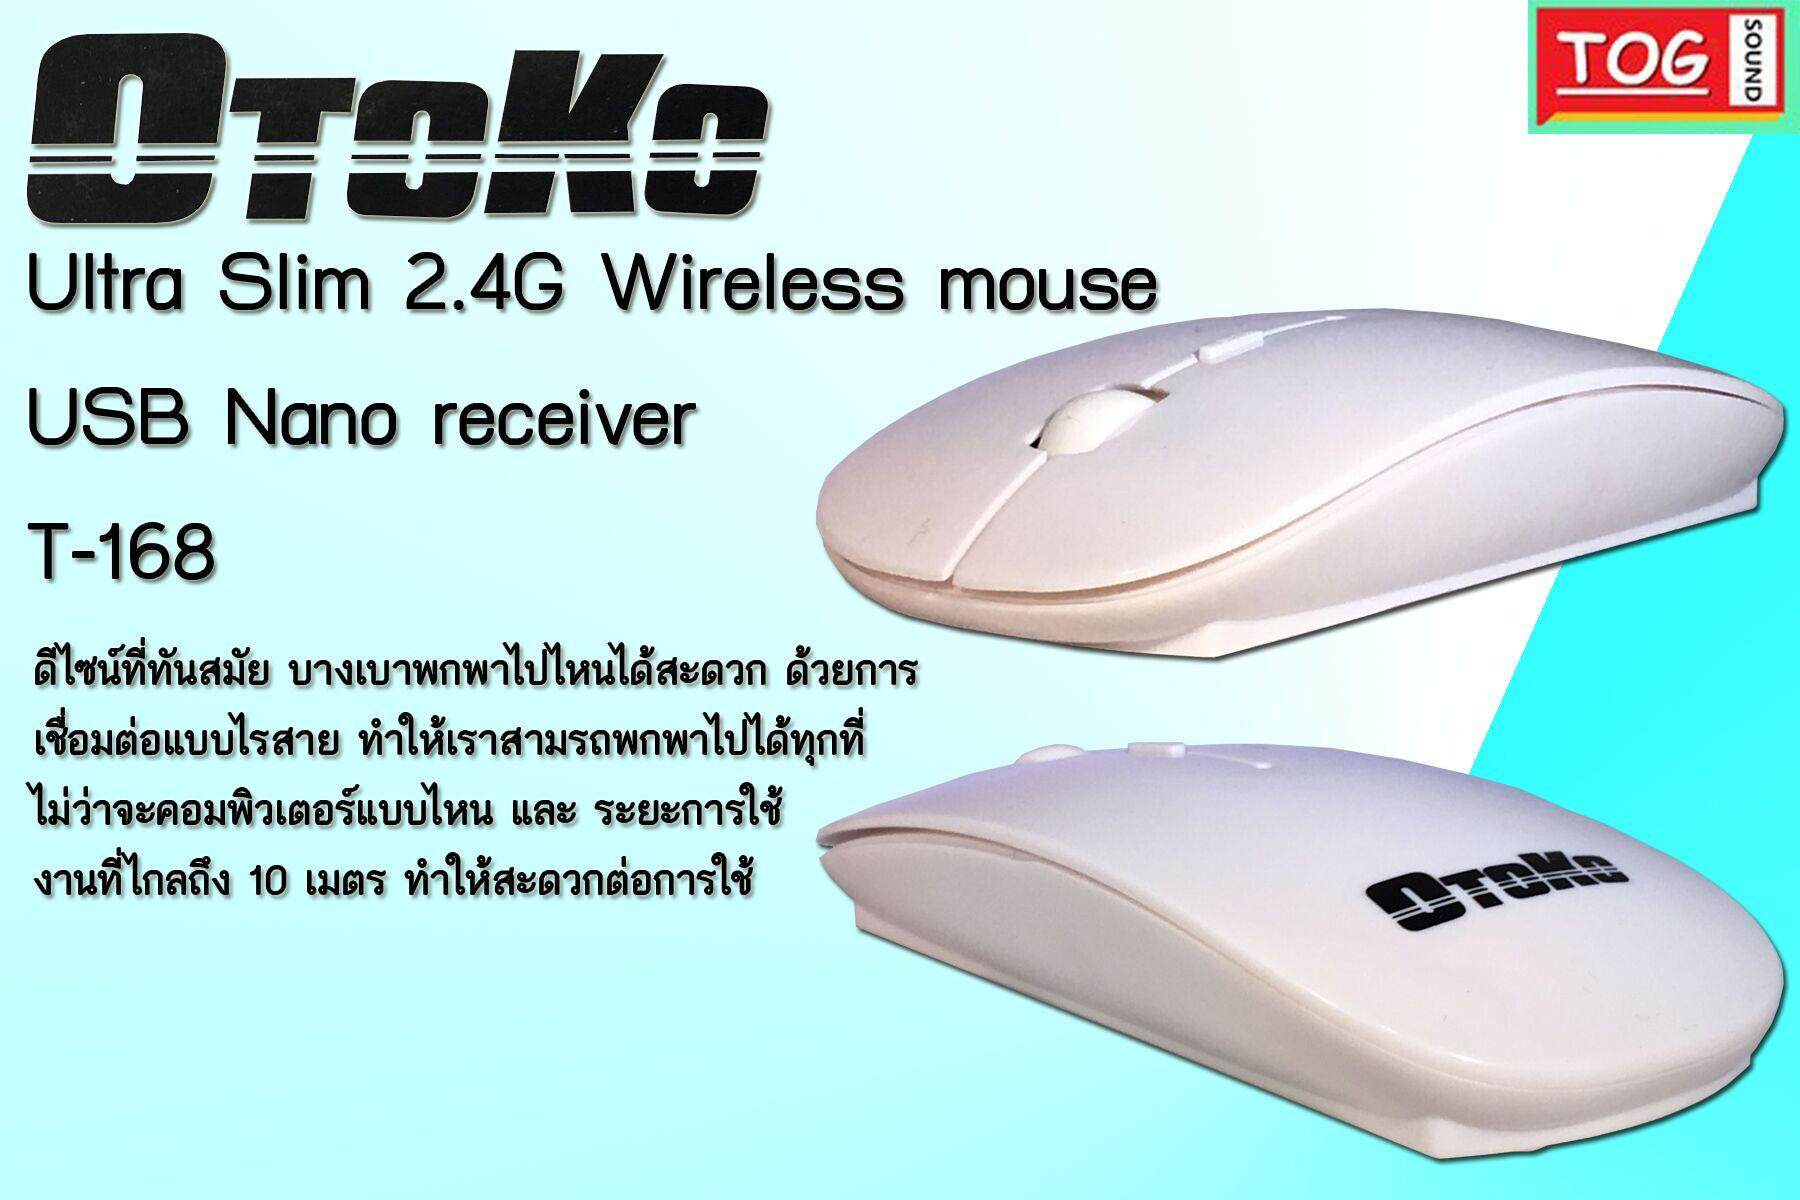 OTOKO เม้าส์ไร้สาย คอมพิวเตอร์ Ultra Slim 2.4G รุ่น T-168 Wireless Mouse For PC Laptop and Android TV box (White)